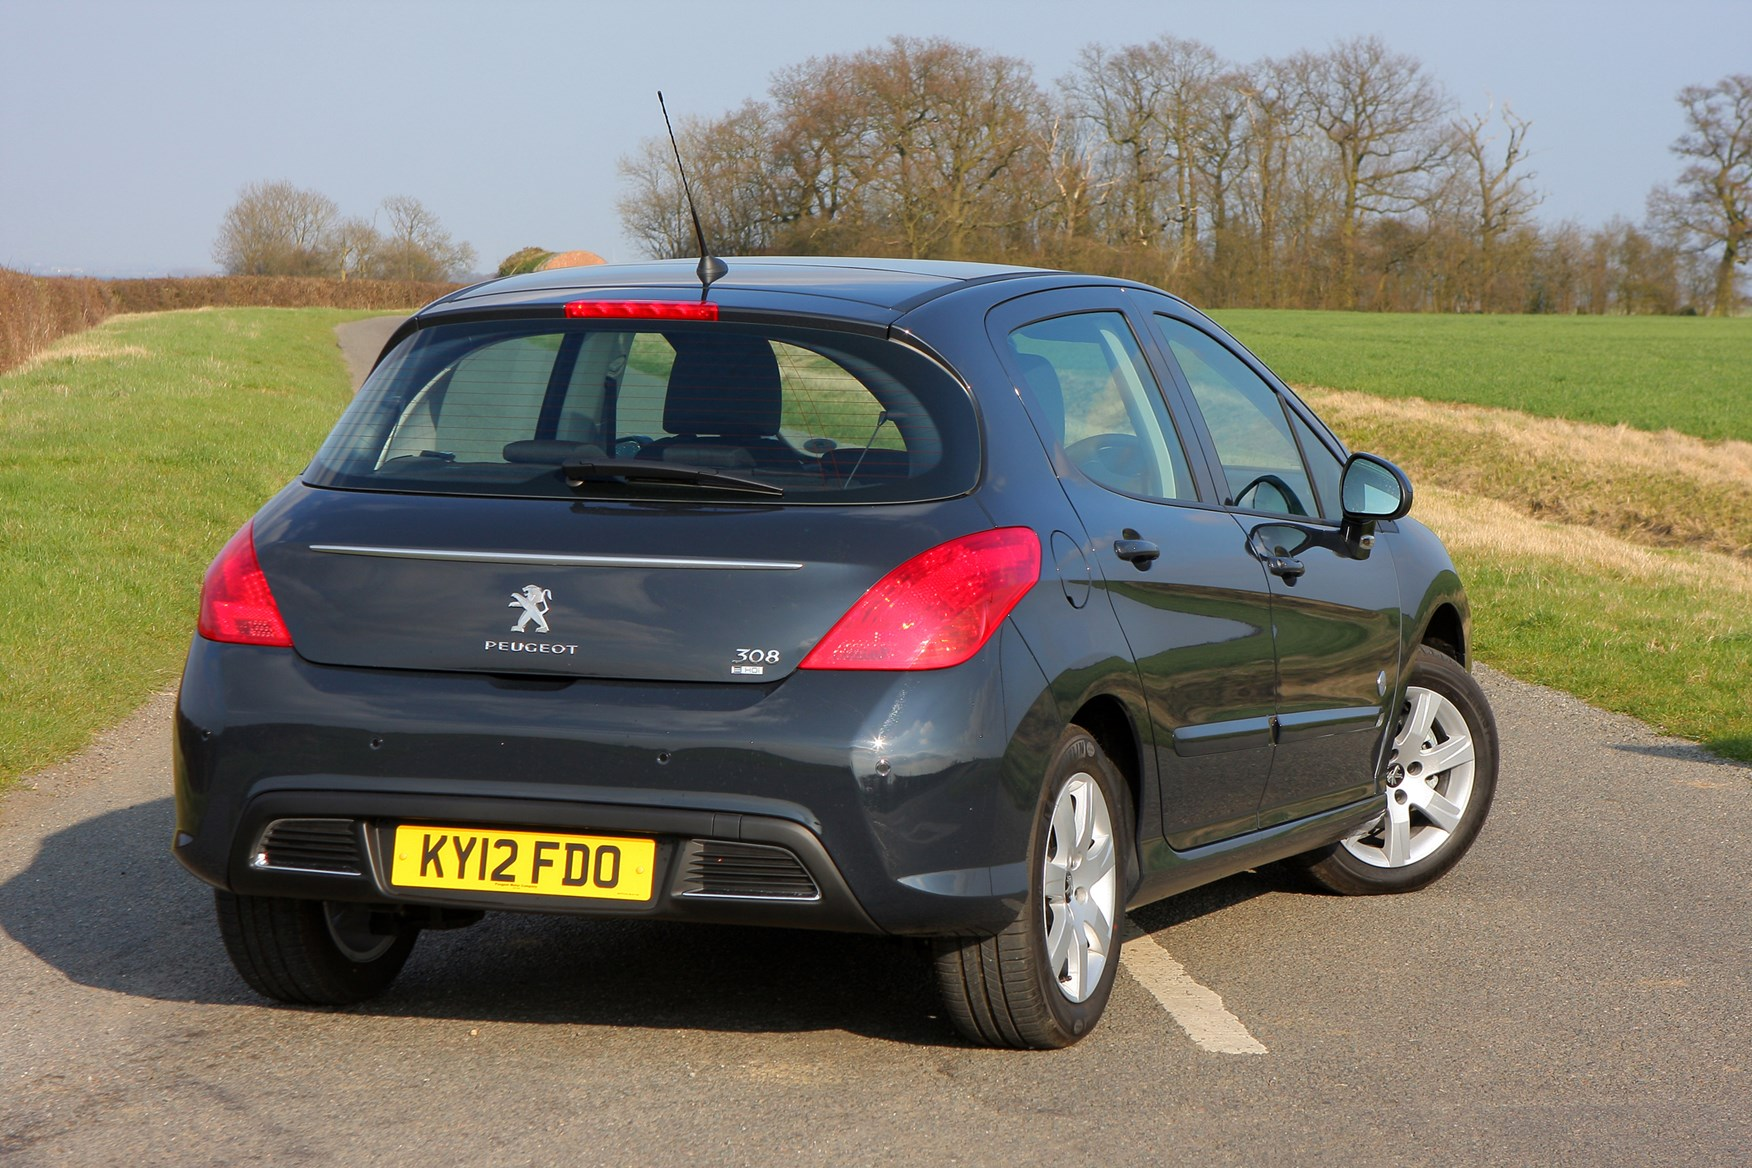 Peugeot 308 Hatchback Review (2007 - 2013) | Parkers